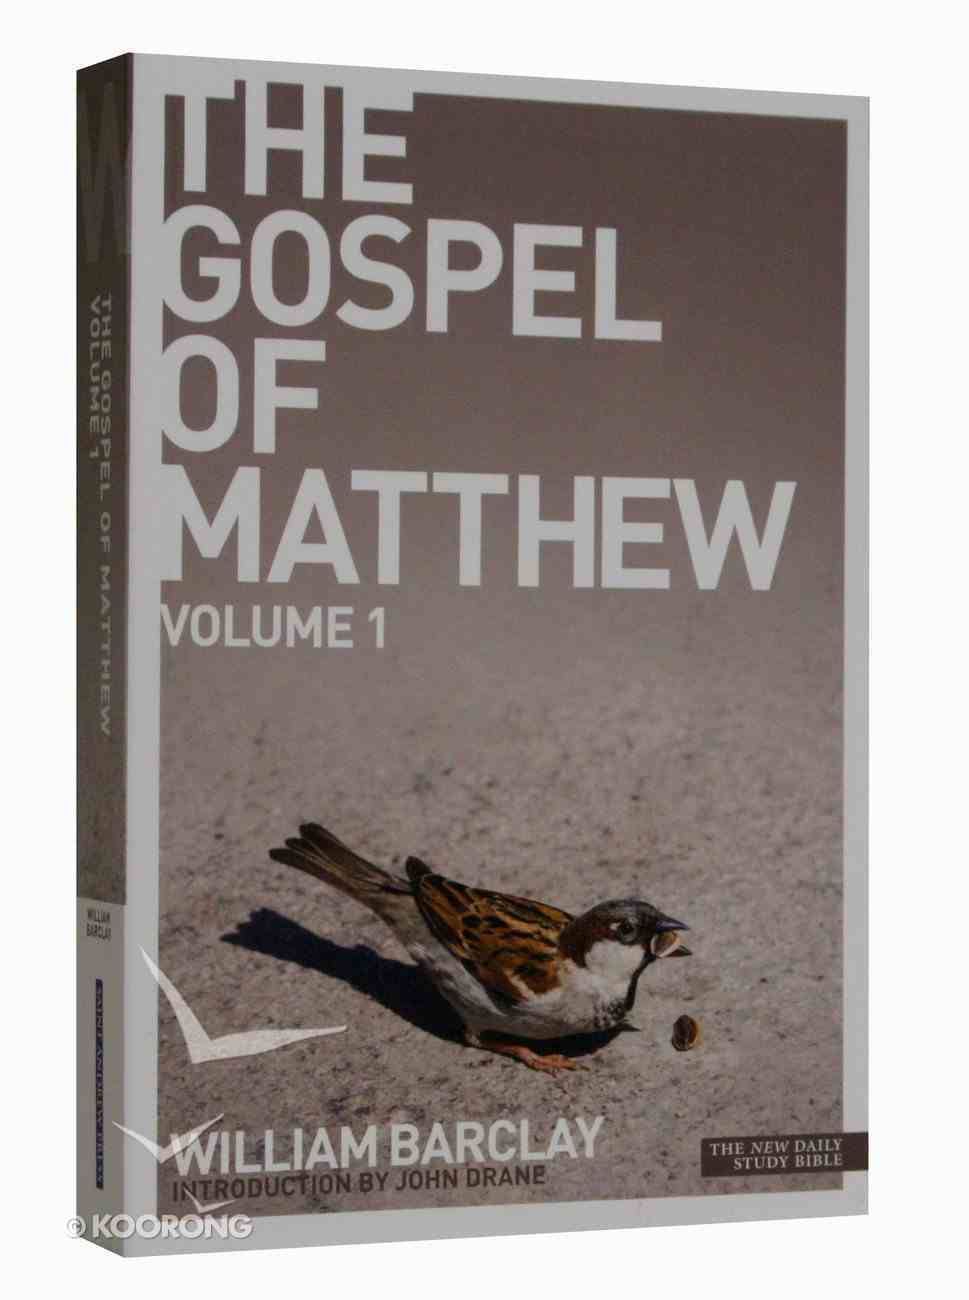 The Gospel of Matthew (Volume 1) (New Daily Study Bible Series) Paperback